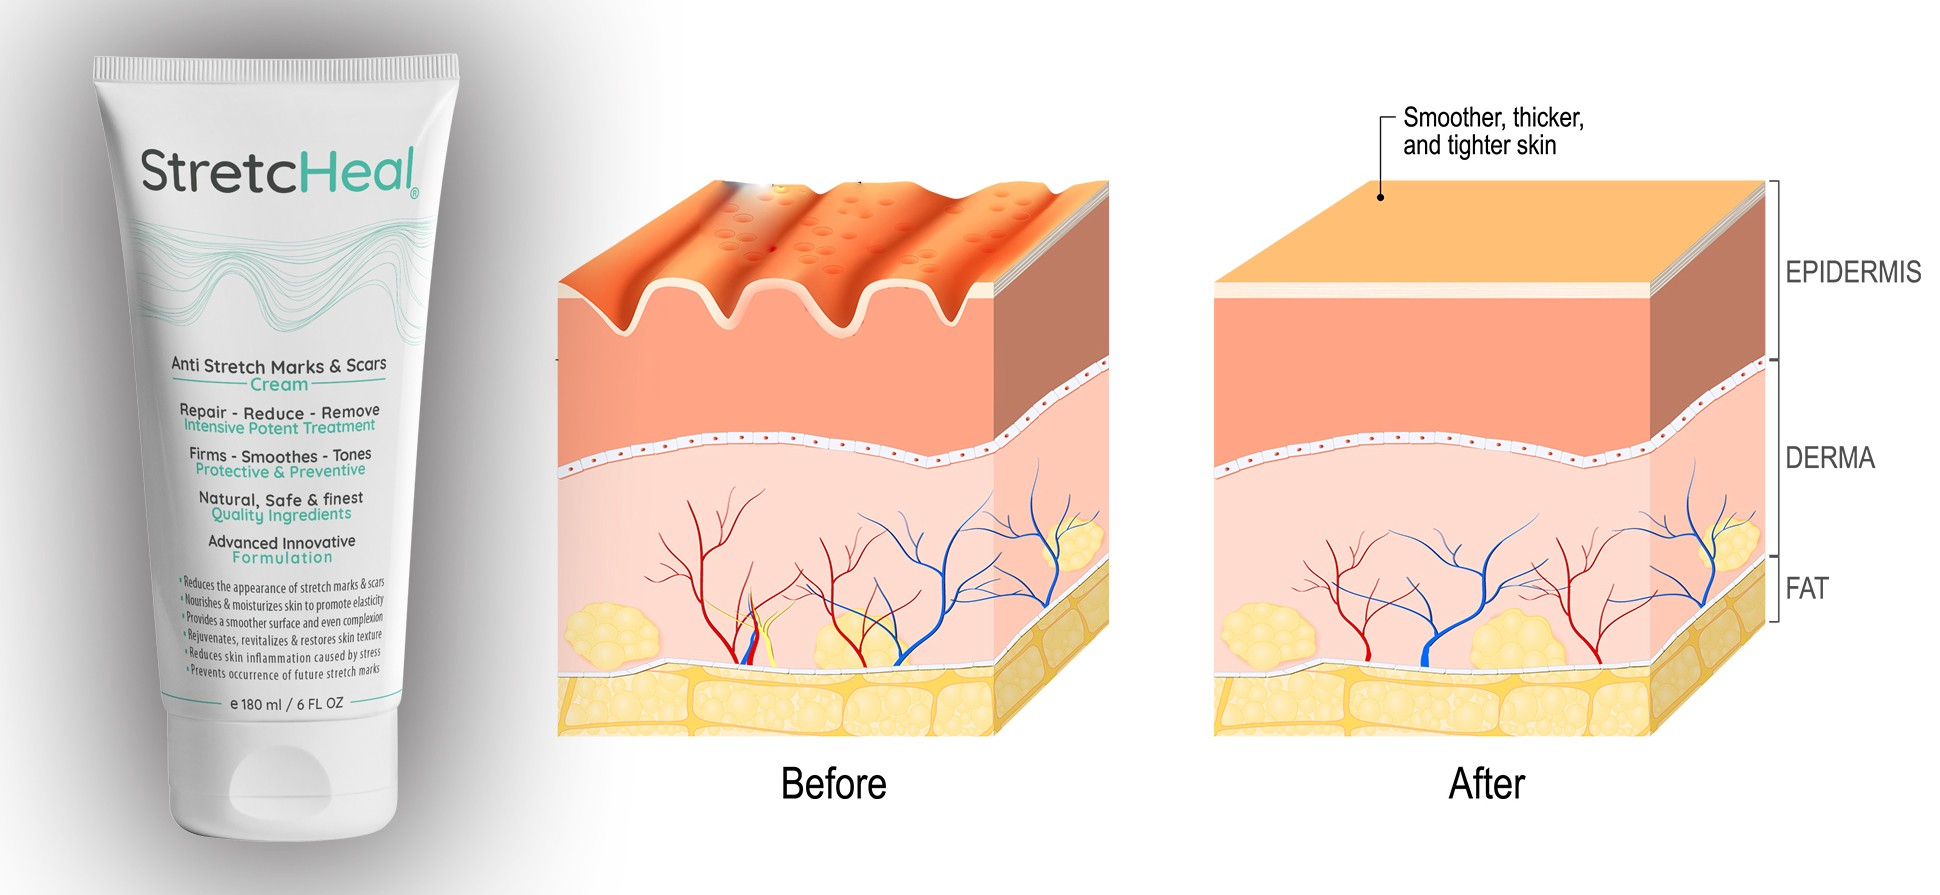 STRETCHEAL REVIEW: THE BEST WAY TO GET RID OF STRETCH MARKS